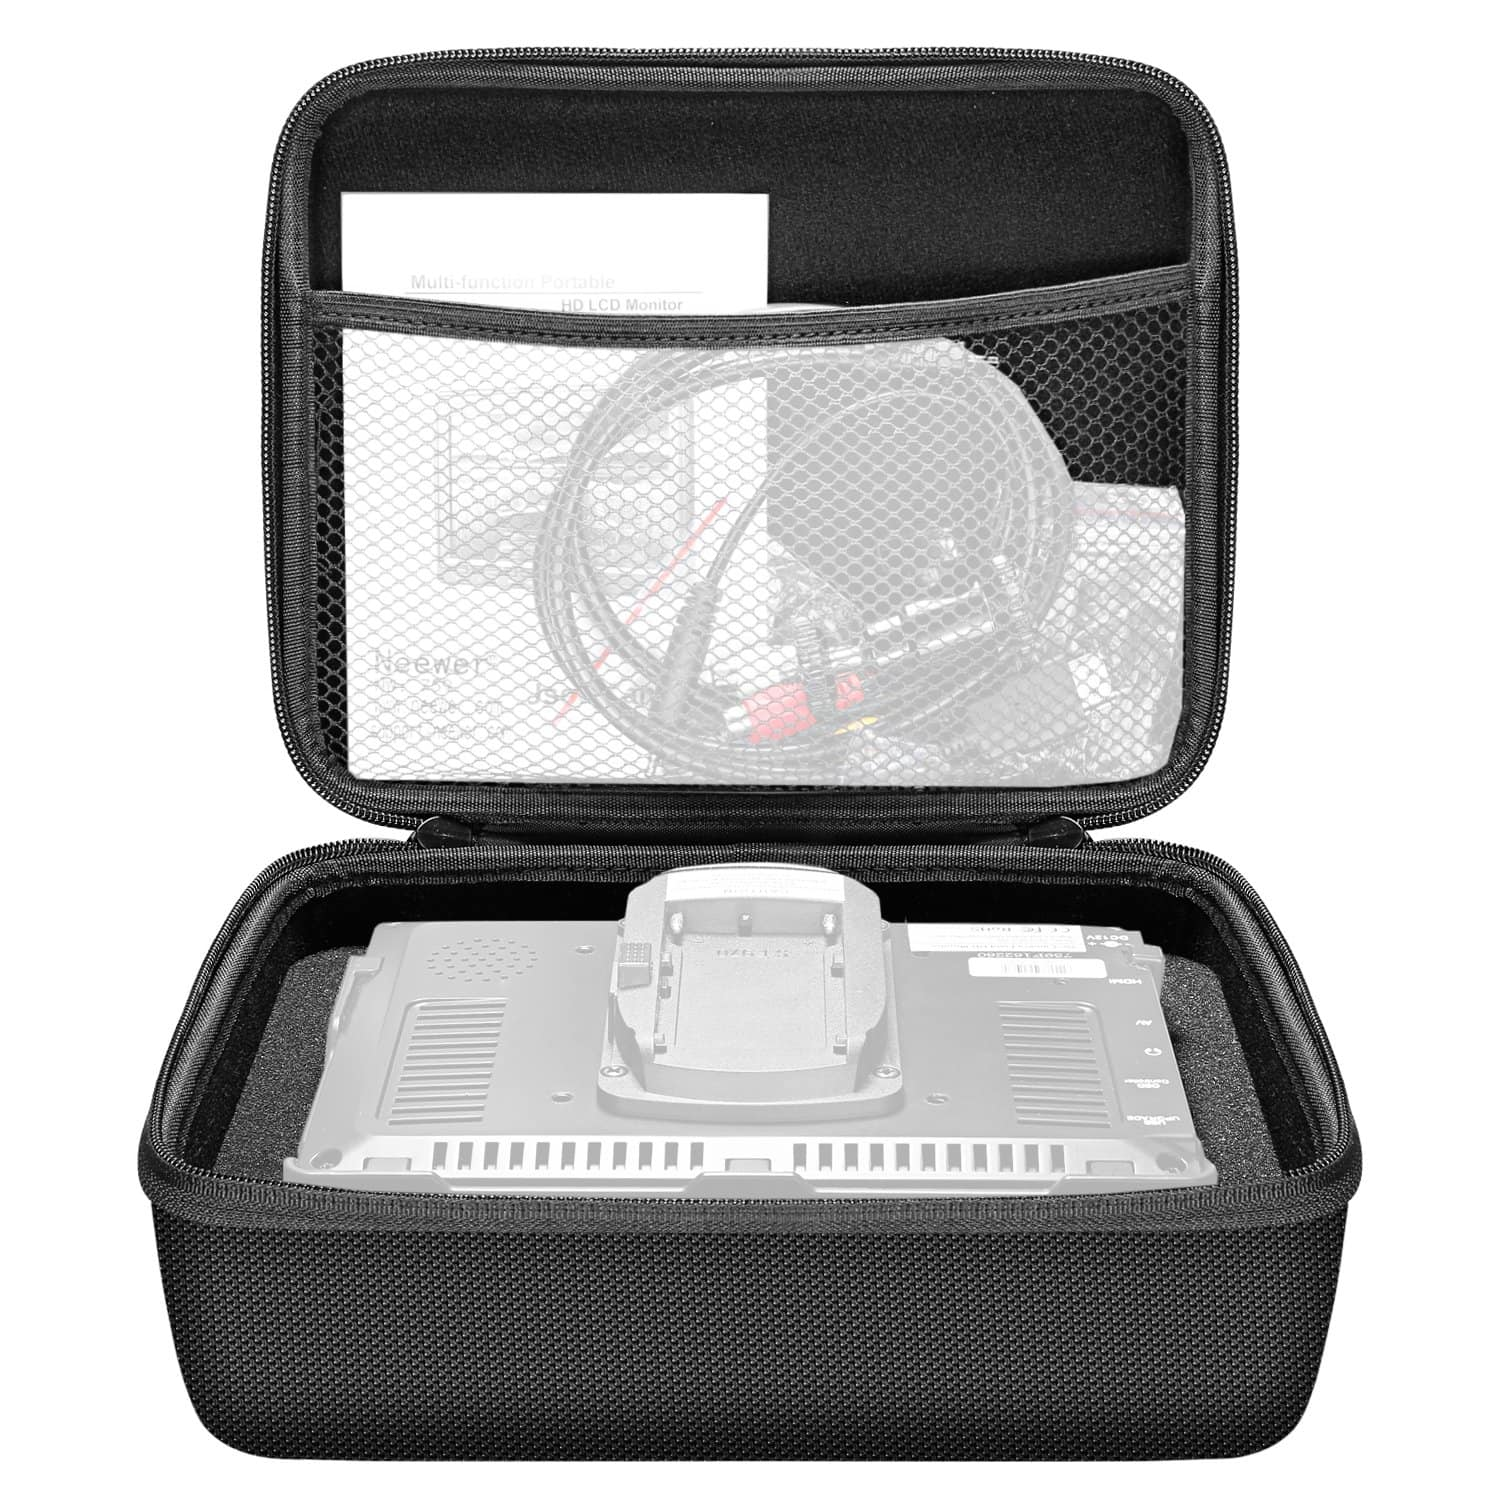 "Neewer Portable EVA Monitor Carrying Case for 7"" Monitors - $7.79 + FS $7.99"